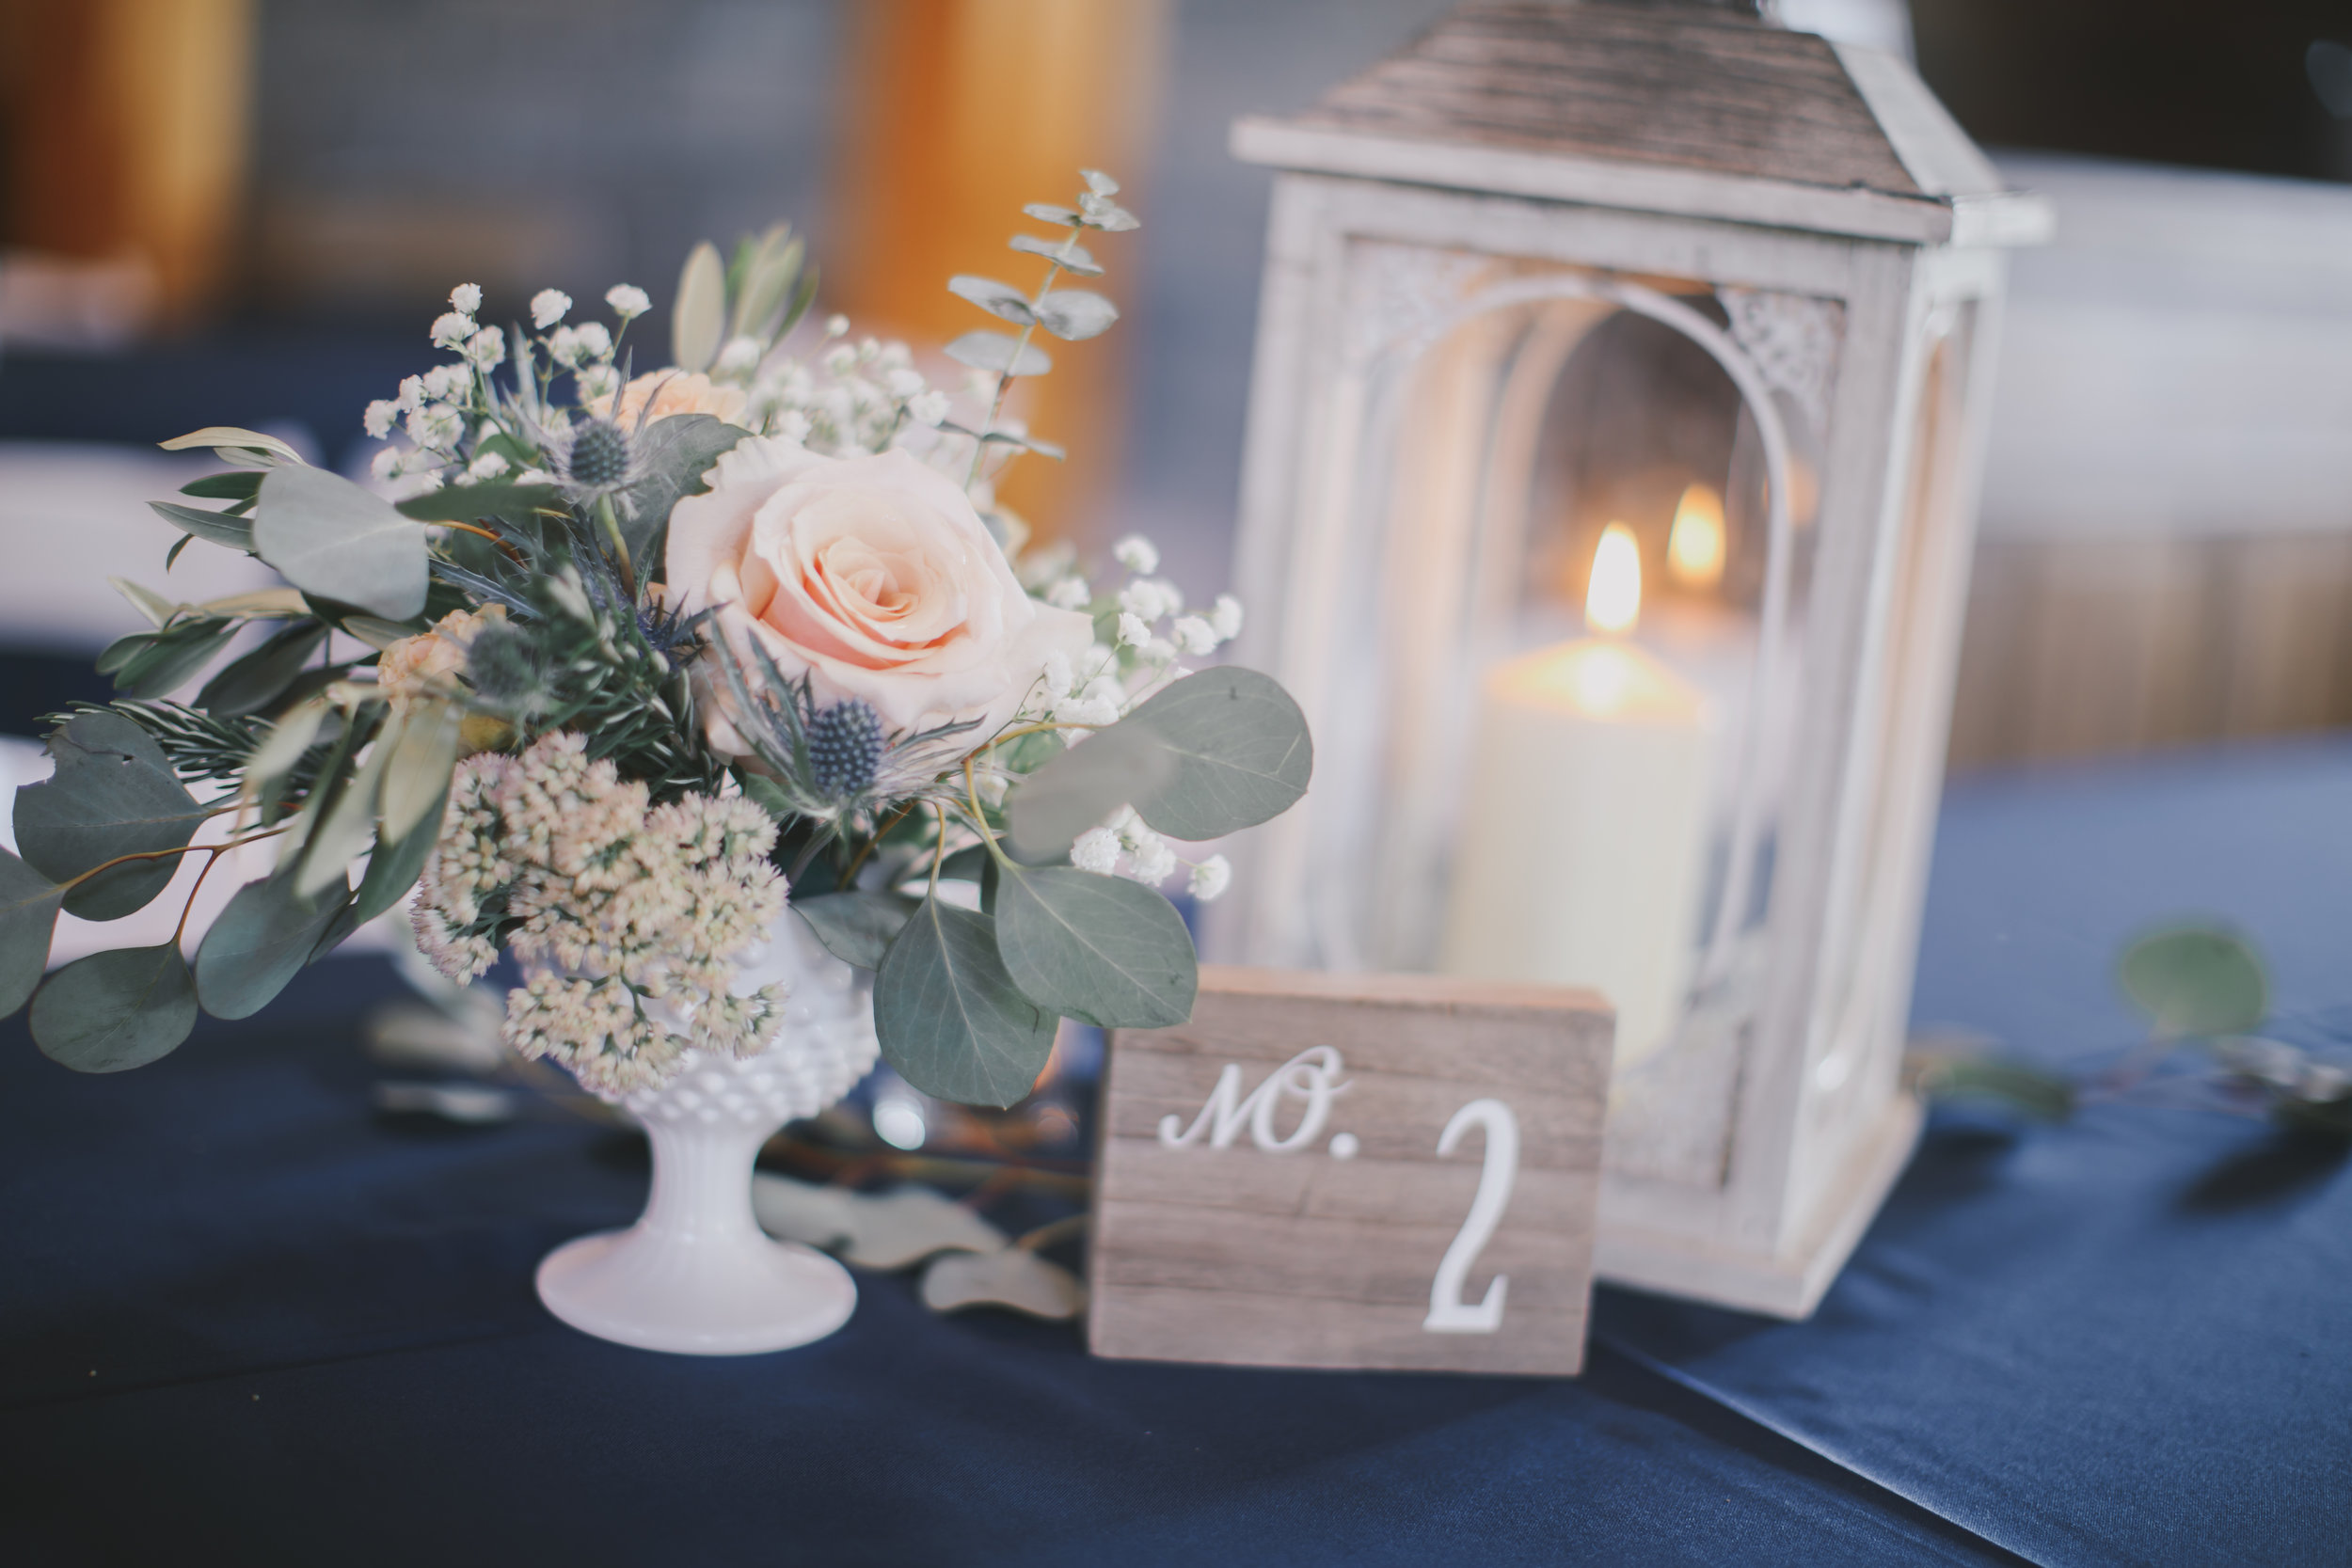 She does more that just bouquets. Check at these table florals! pc: Katelyn King Photography